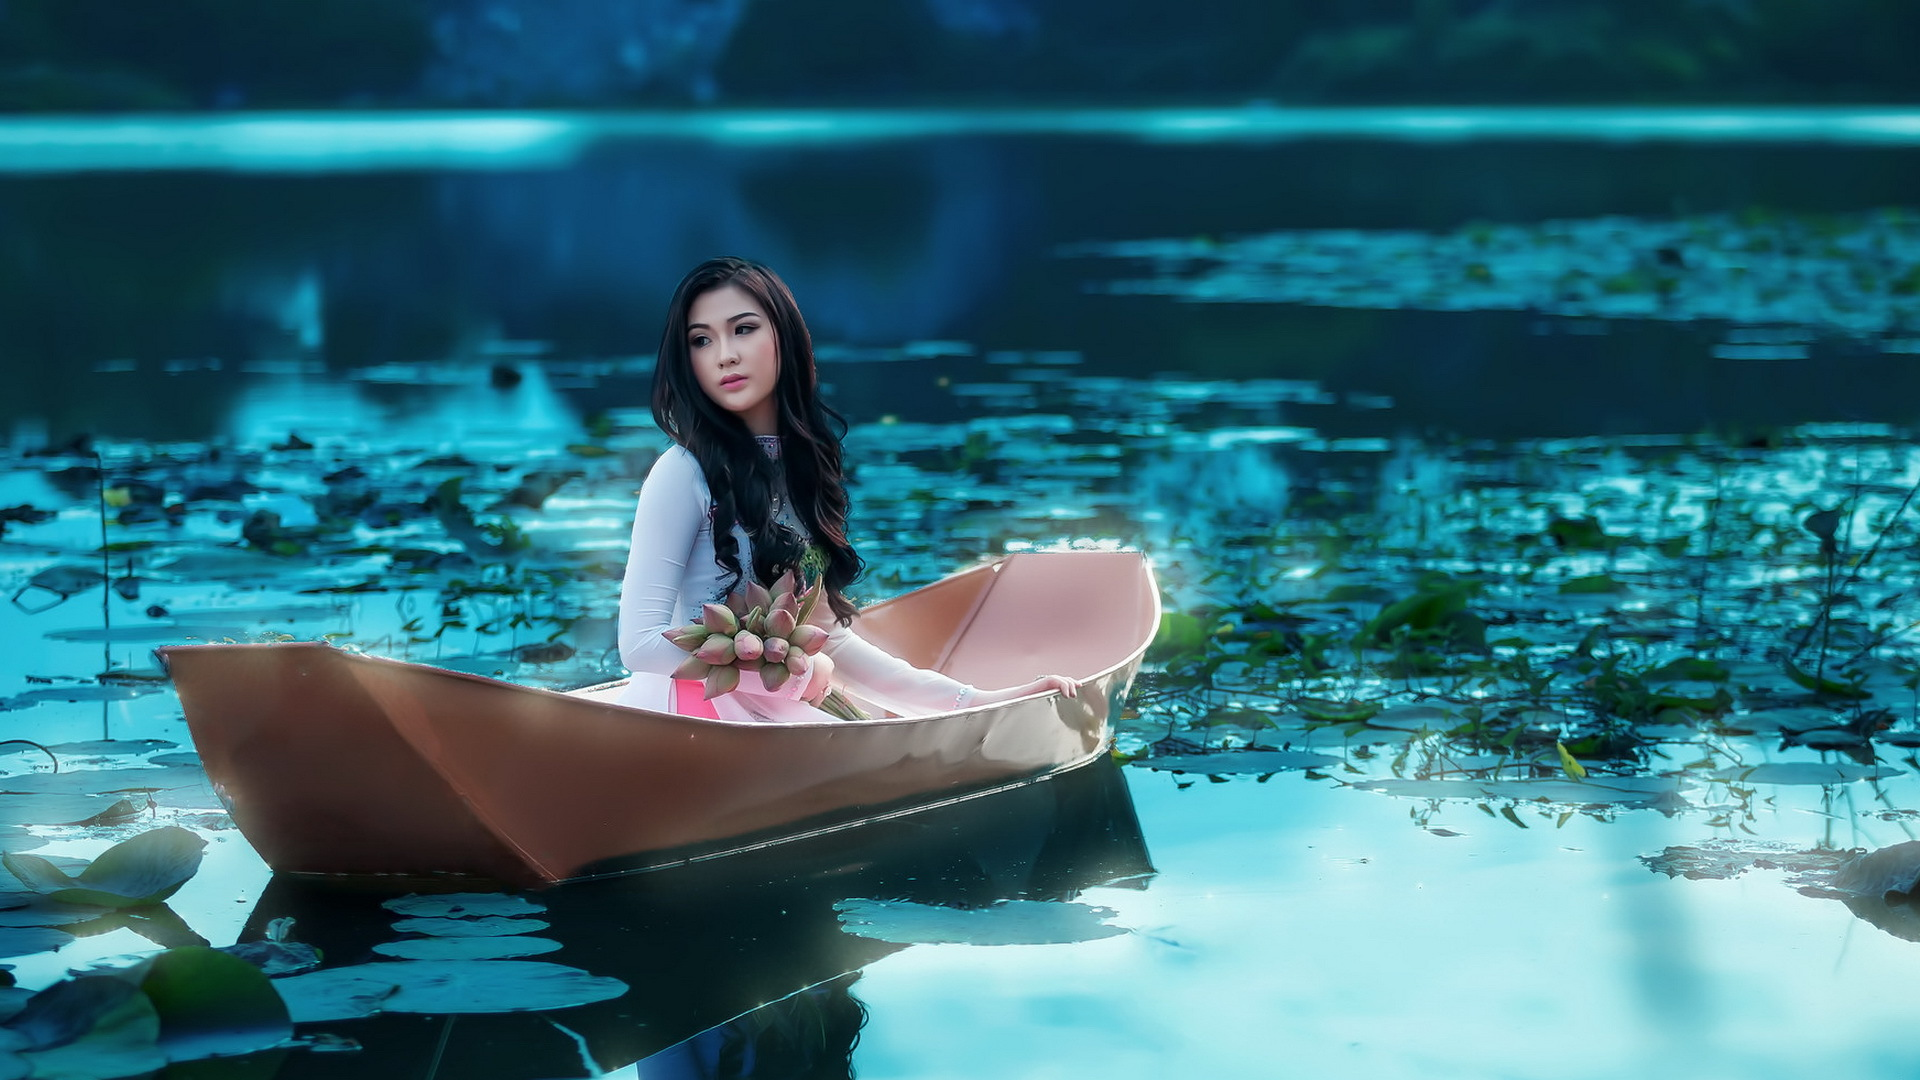 Comments & Captions - Beautiful Girl On The Boat , HD Wallpaper & Backgrounds